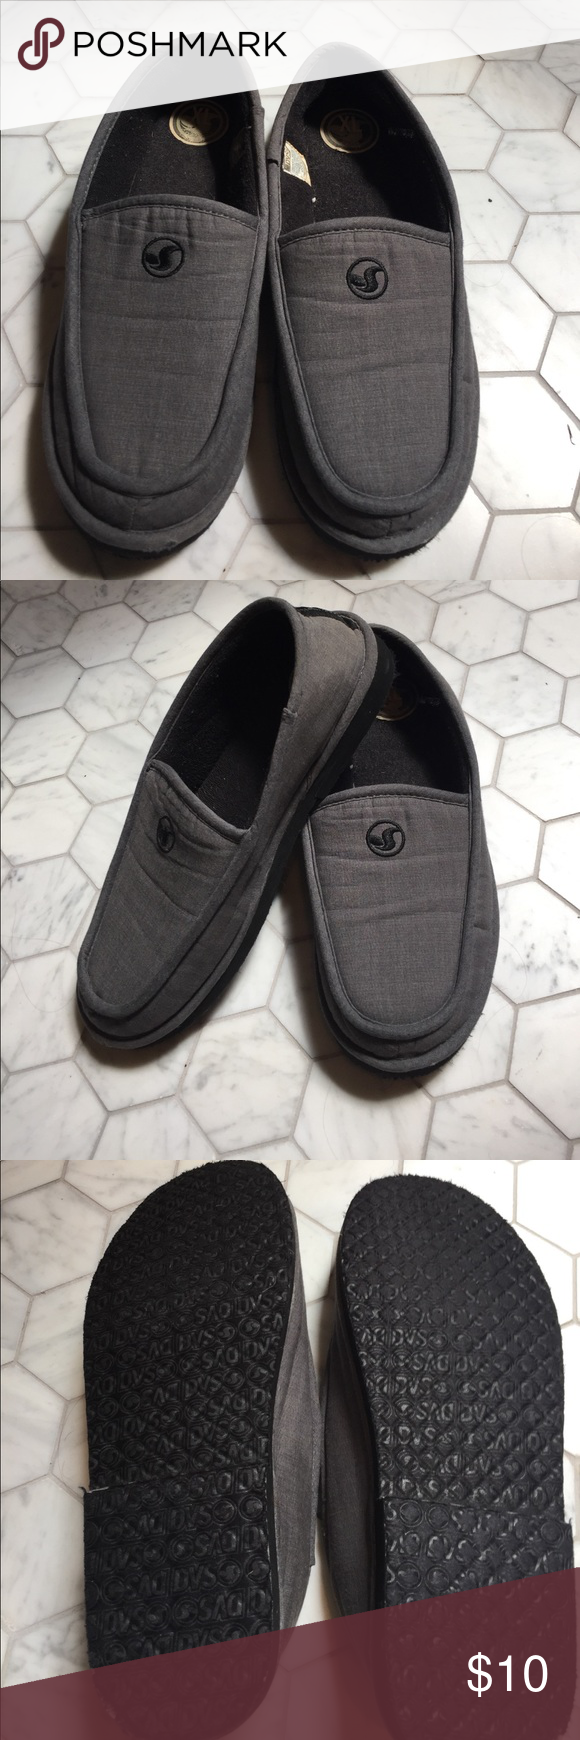 d62d1c68bd09 DVS men s XL Francisco slipper Gently used slippers that just don t fit me  right and they need to go somewhere where they ll be loved dvs Other